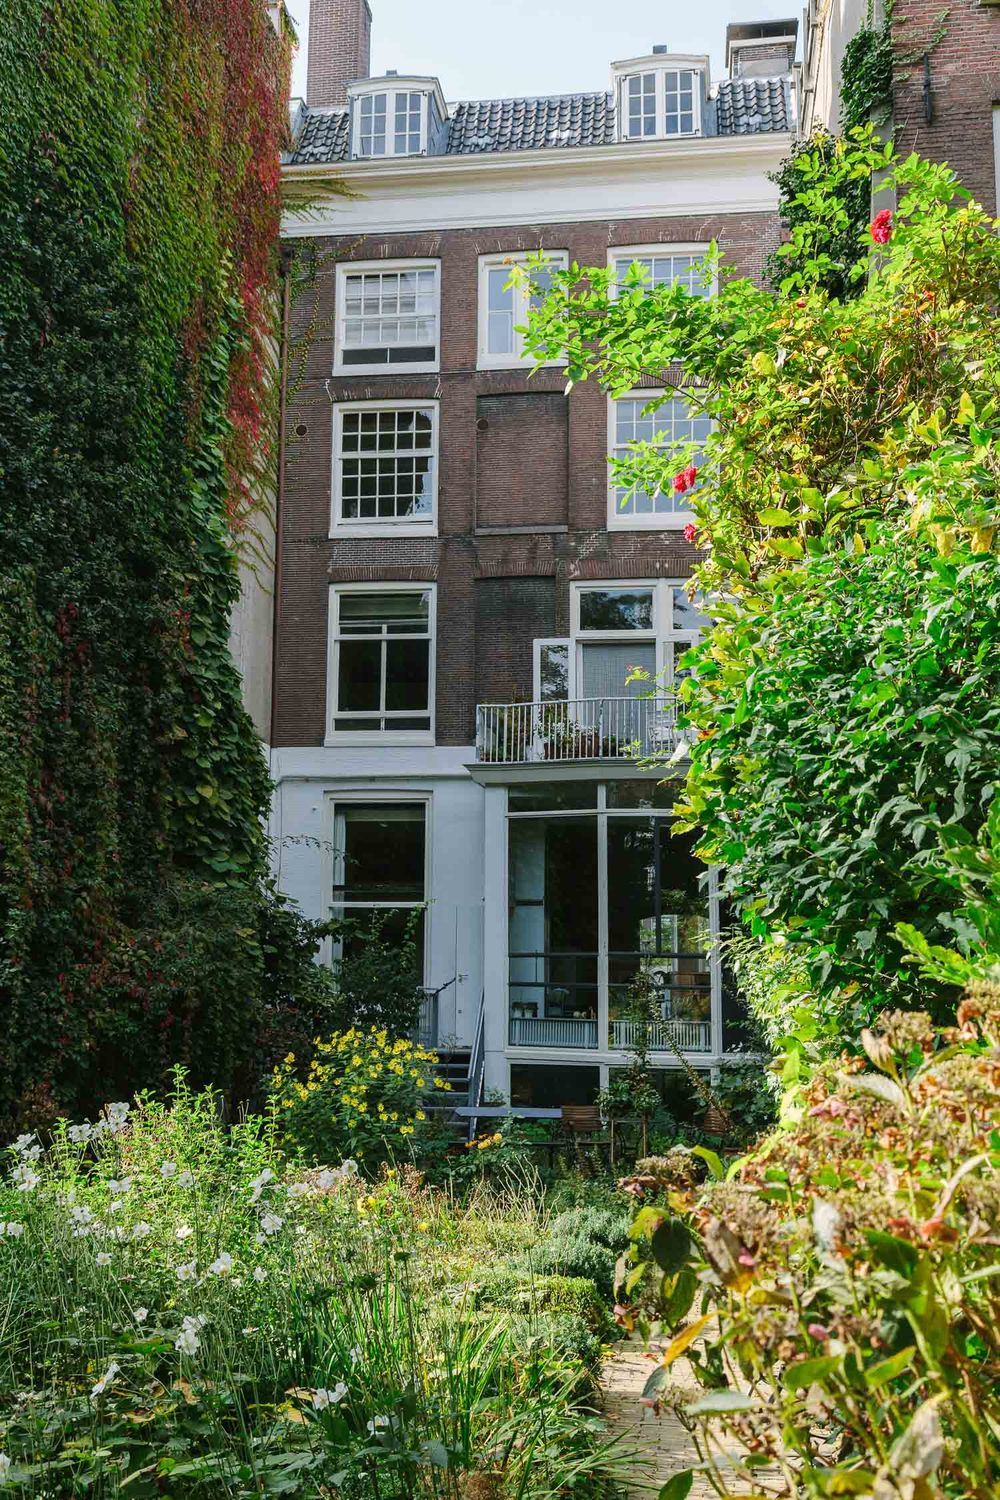 ADAC Amsterdam gardens of the old town canal houses by on a hazy